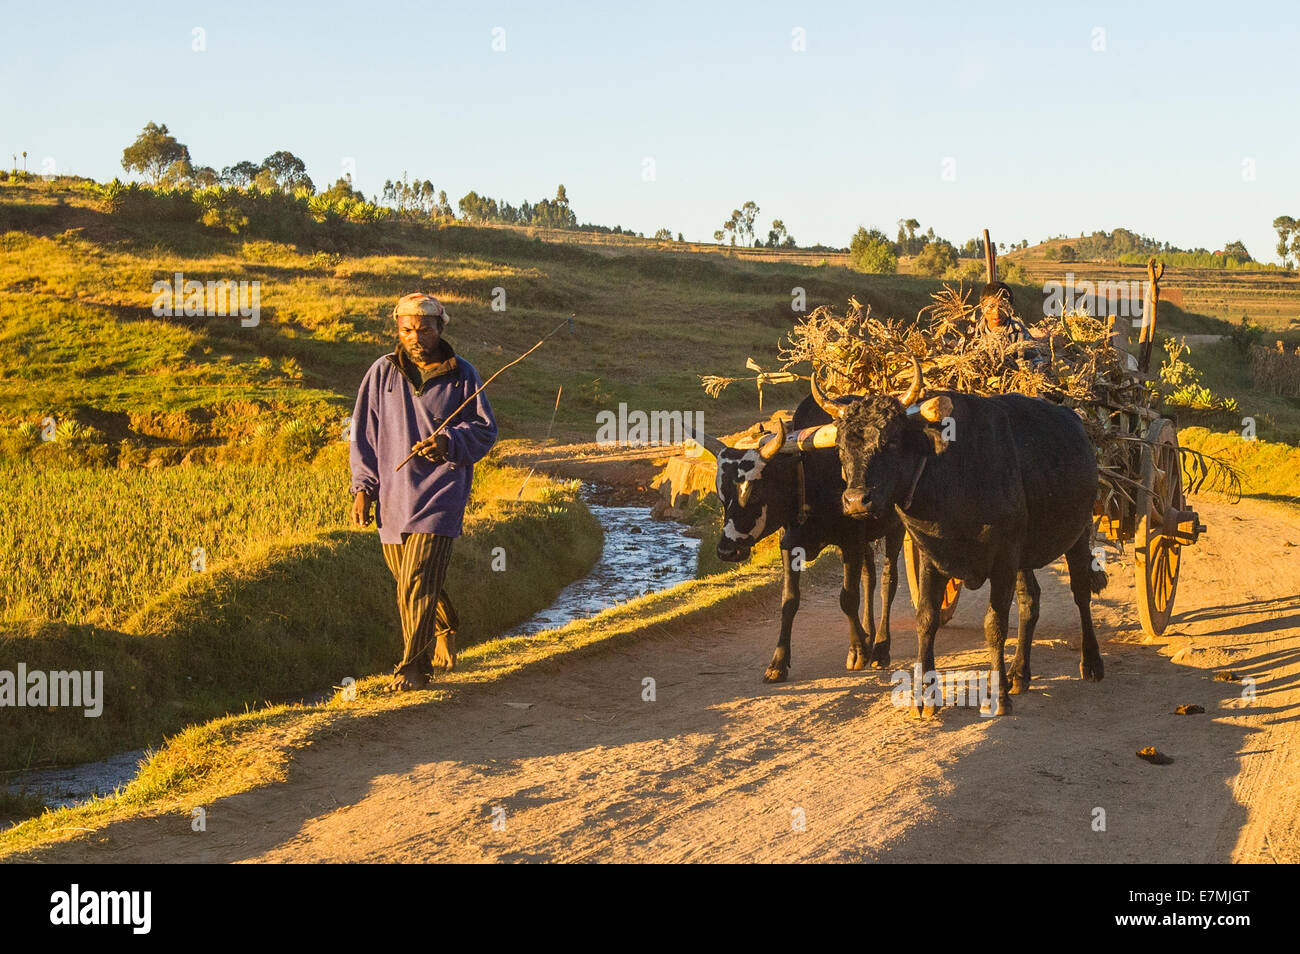 A Farmer with his ox cart - Stock Image